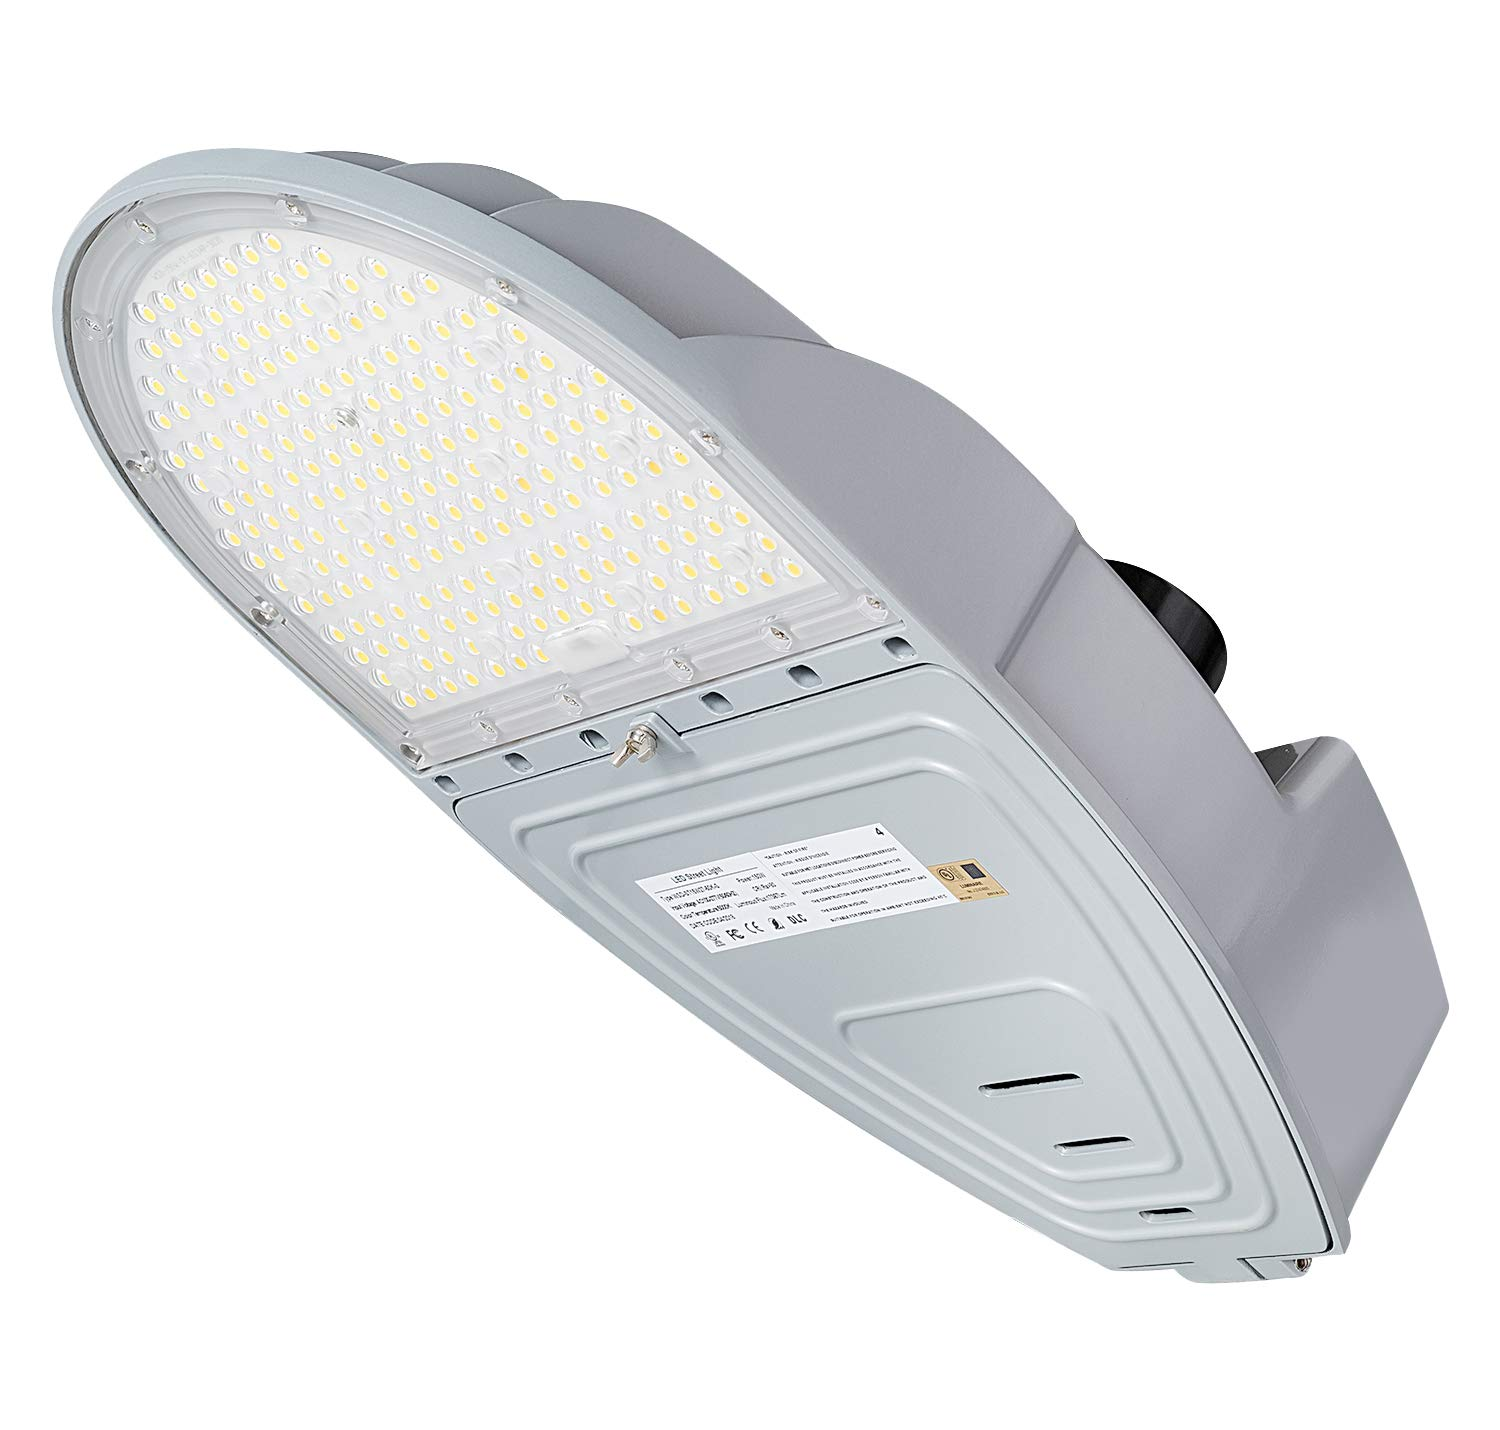 1000LED LED Street Light 150W, 17,367Lm, 400W HID/HPS Replacement, 0-10V Dimmable, AC110-277V, Waterproof IP65, LED Area Light